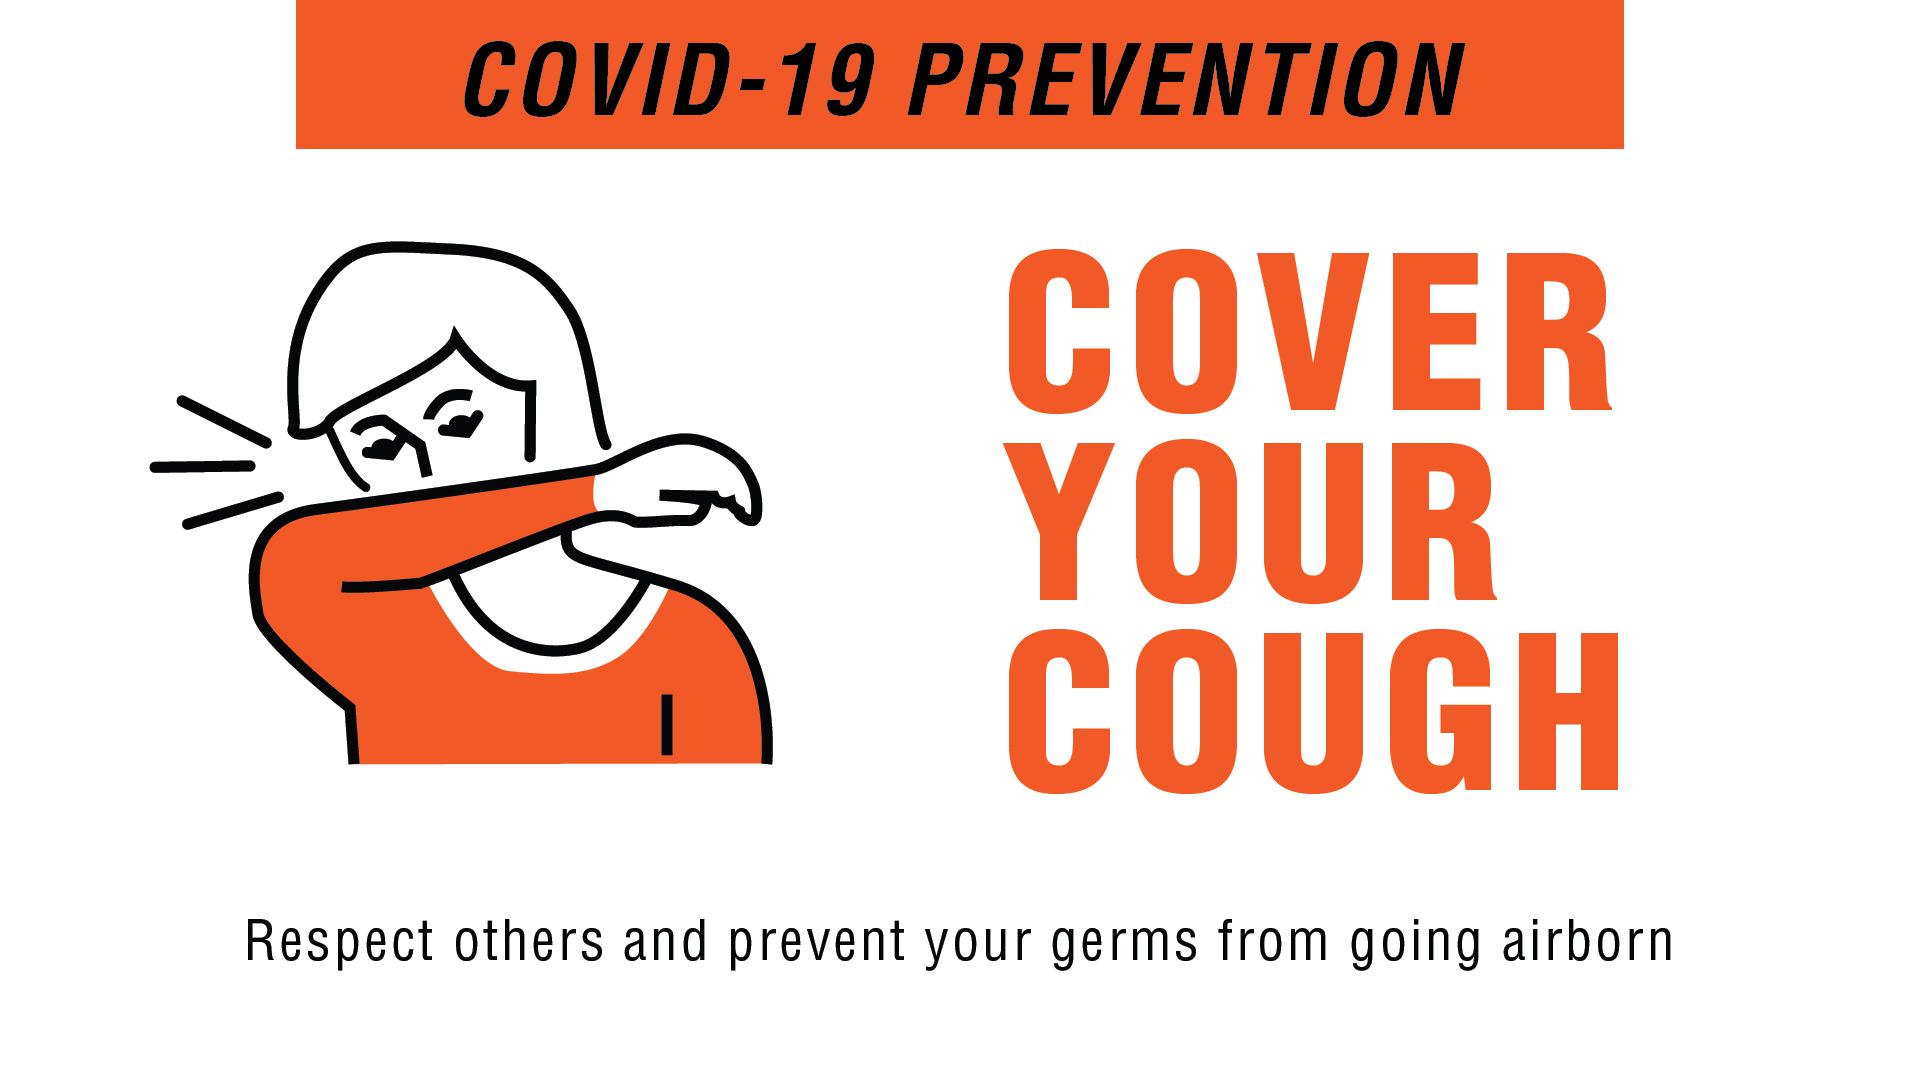 Covid-19 Prevention - Cover Your Cough Digital Signage Image